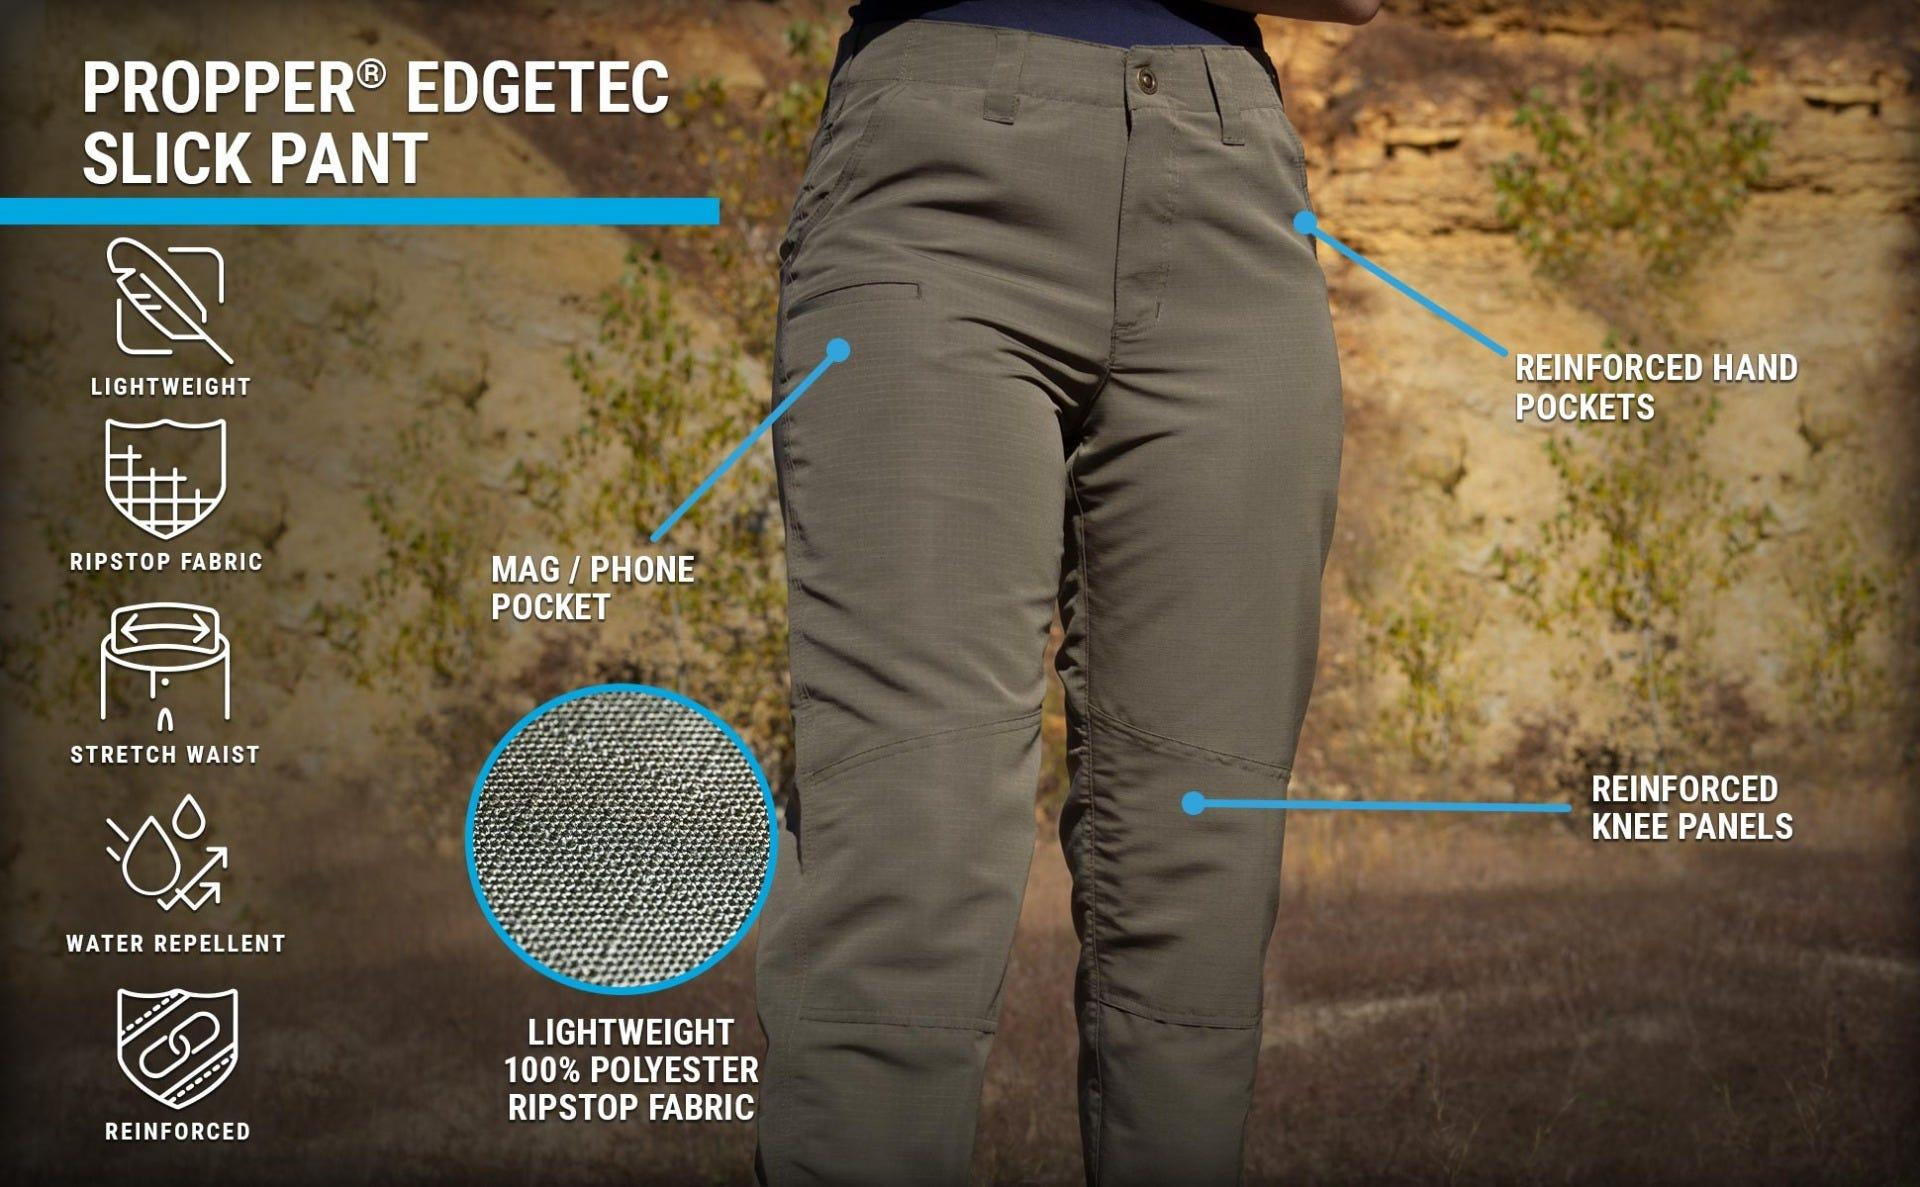 Ranger Edgetec low profile, lightweight ripstop pant on a woman in the woods.